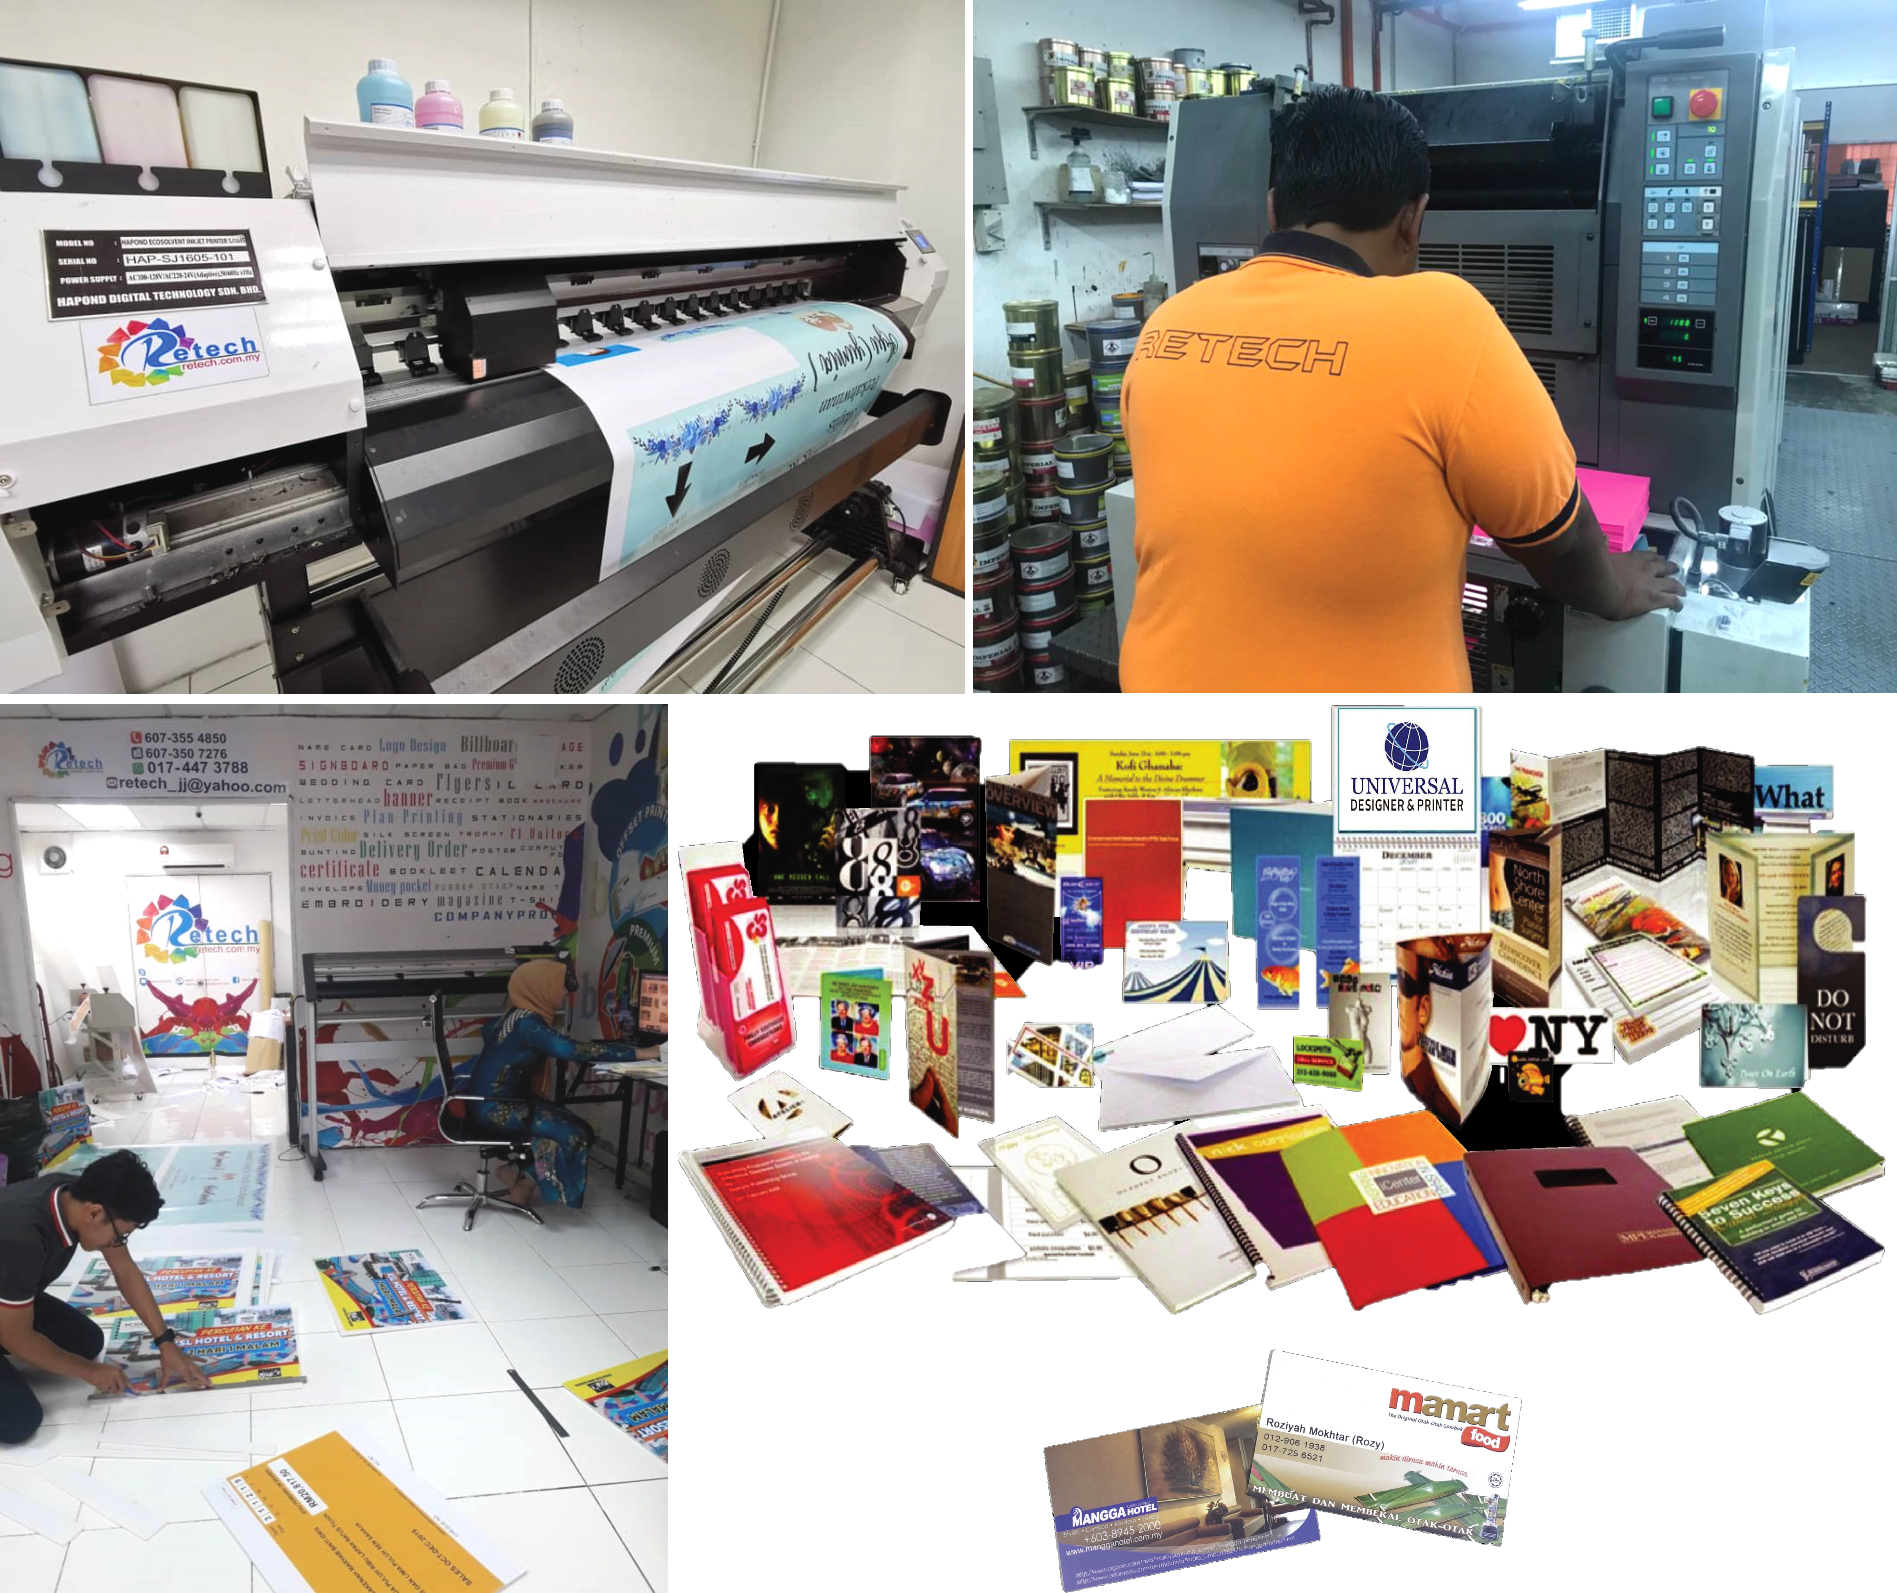 retech-digital-offset-printing